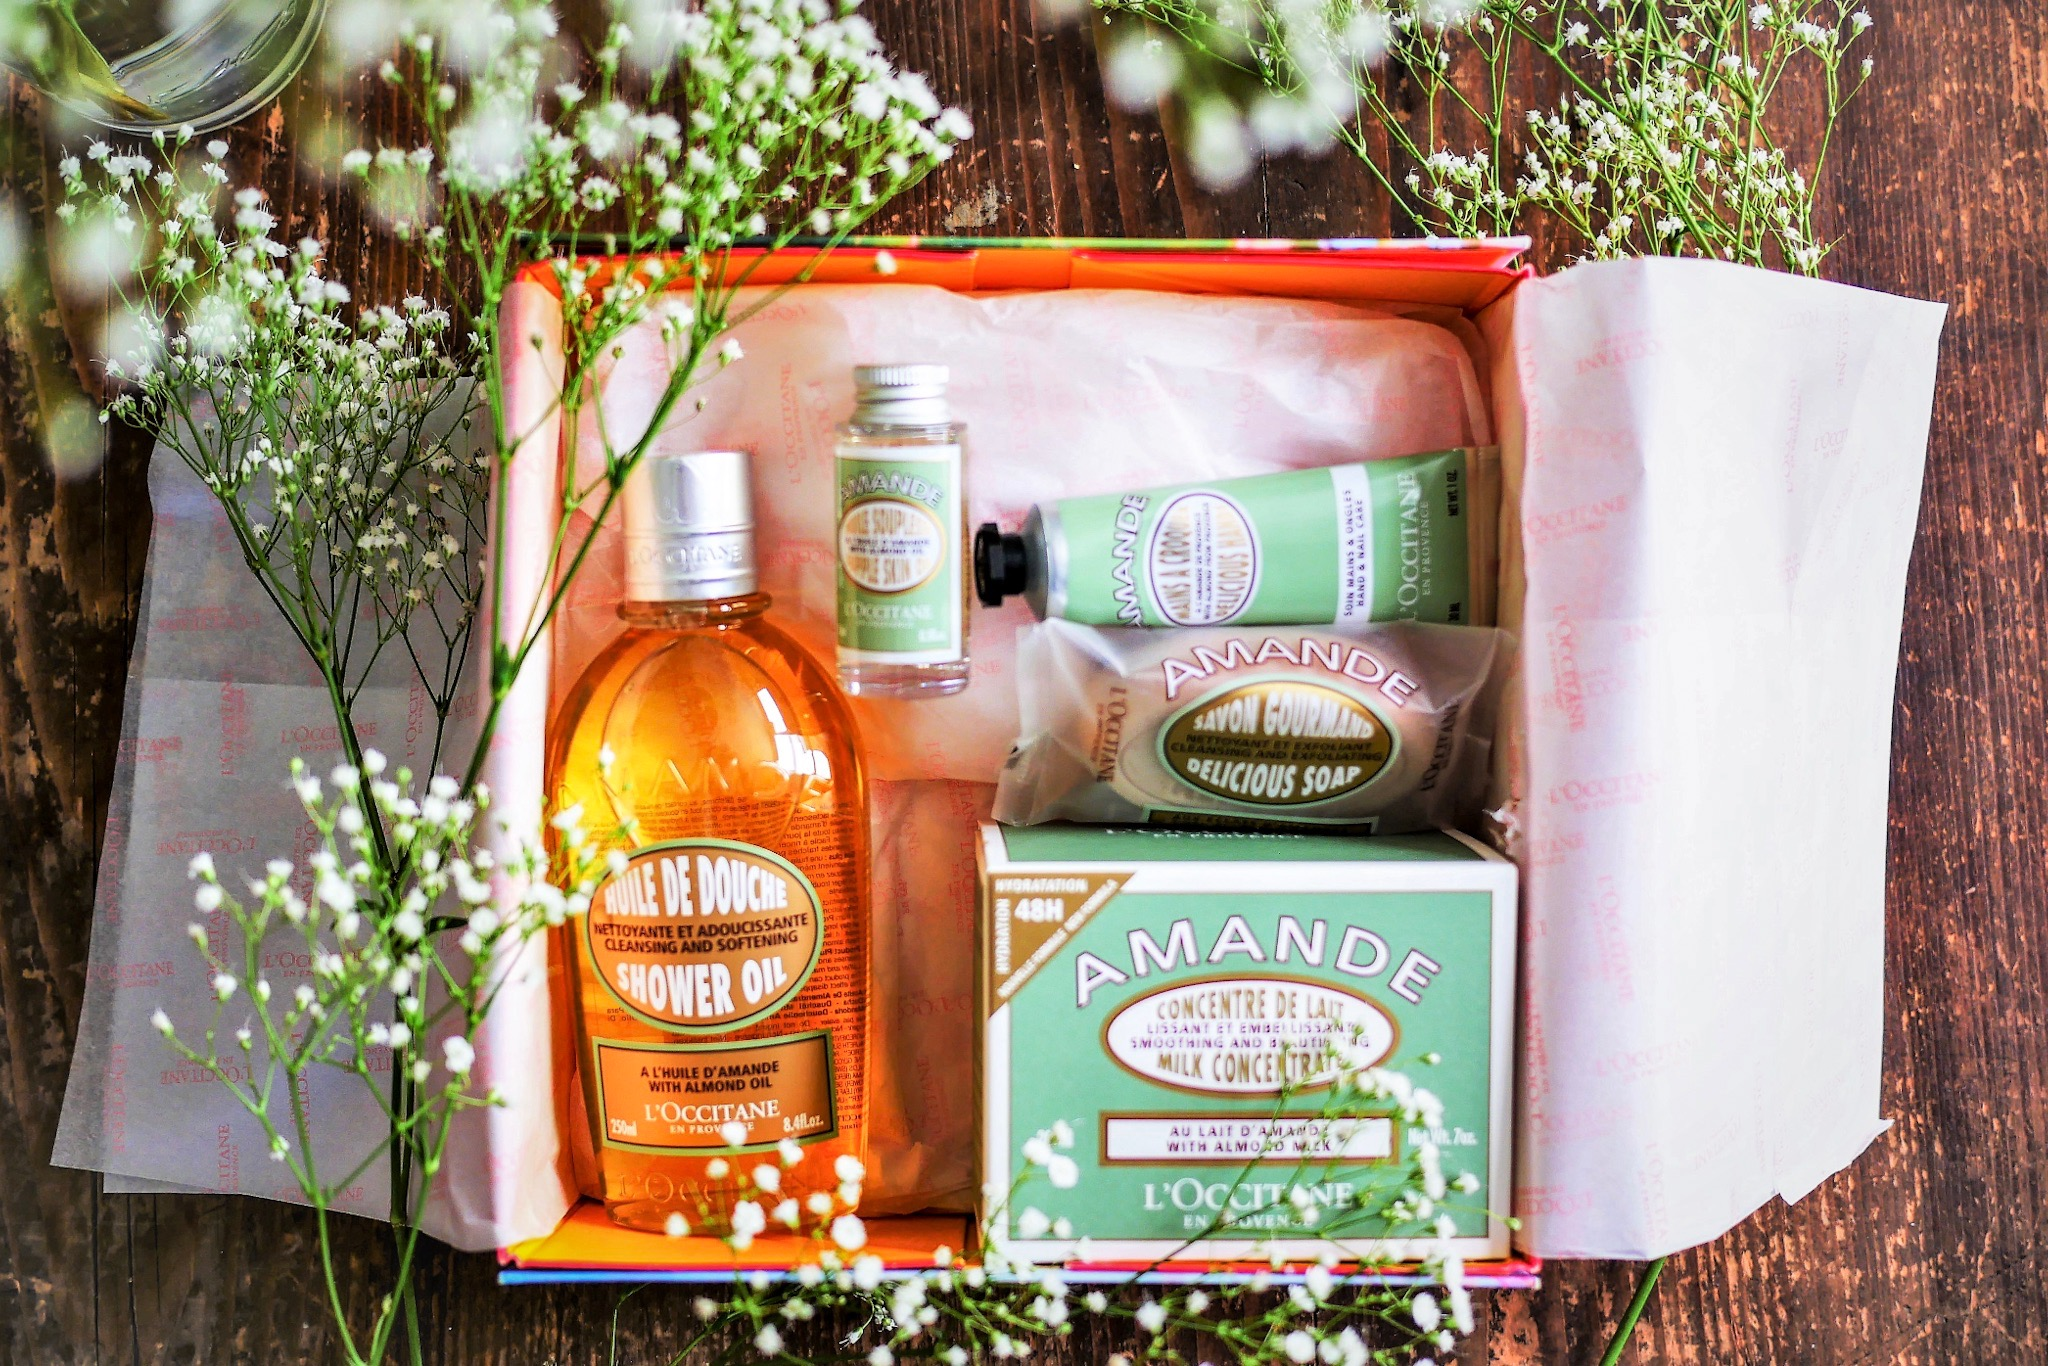 Mother's Day gift idea: L'Occitane - from Provence with Love ...